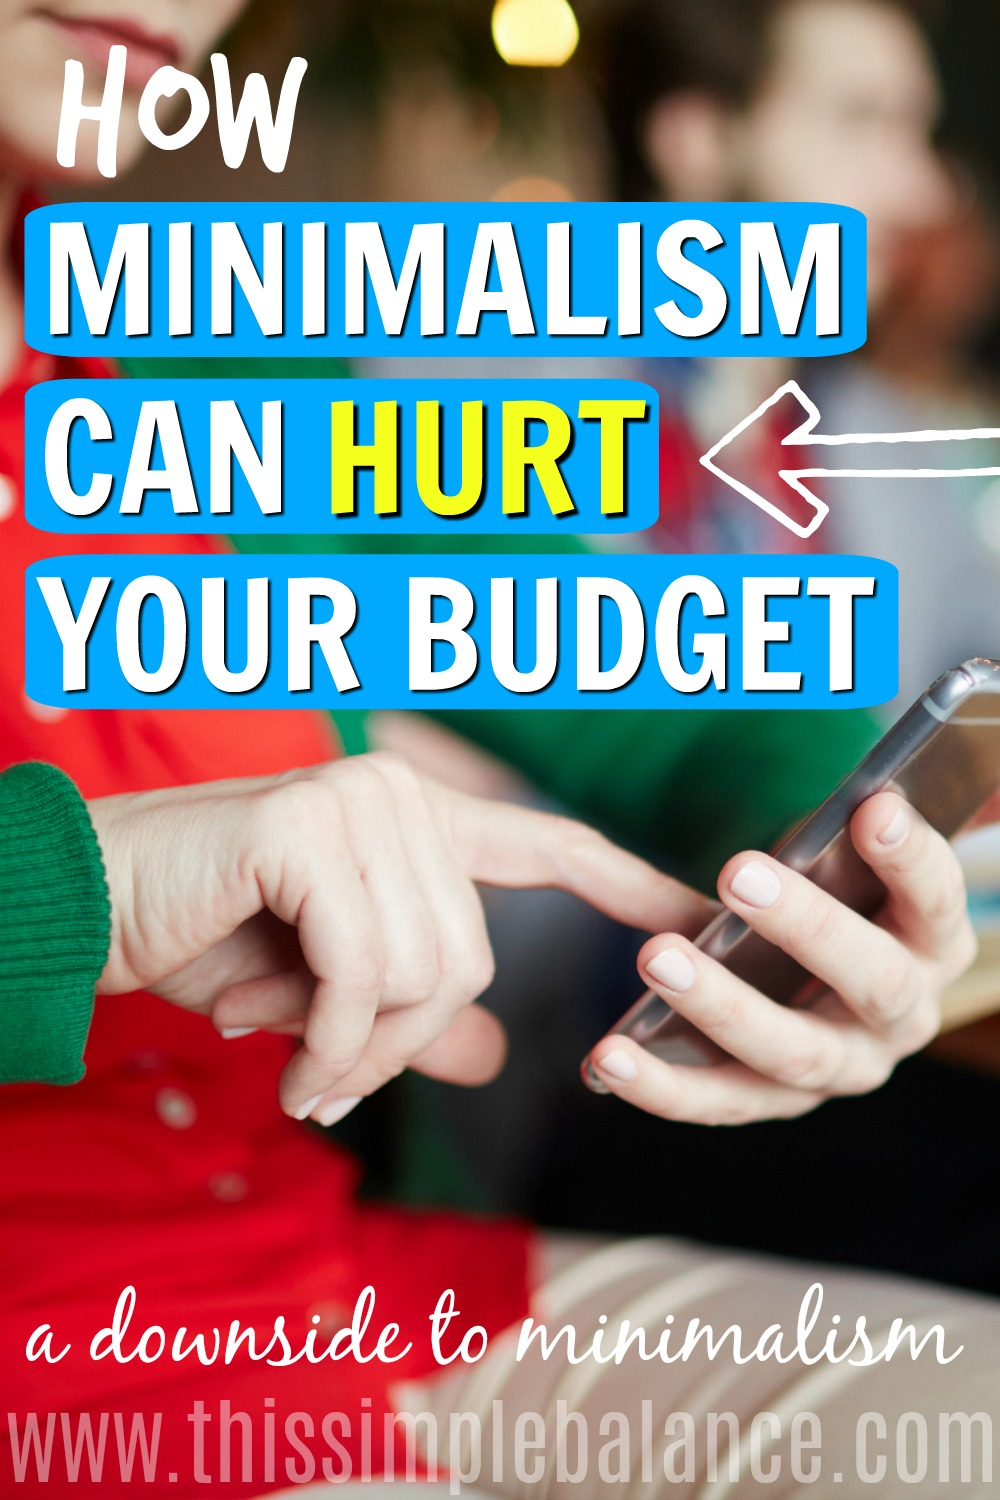 Minimalism claims to set people free from consumerism. But does it really? Get advice on how to handle struggling with consumerism even AFTER you've become a minimalist.